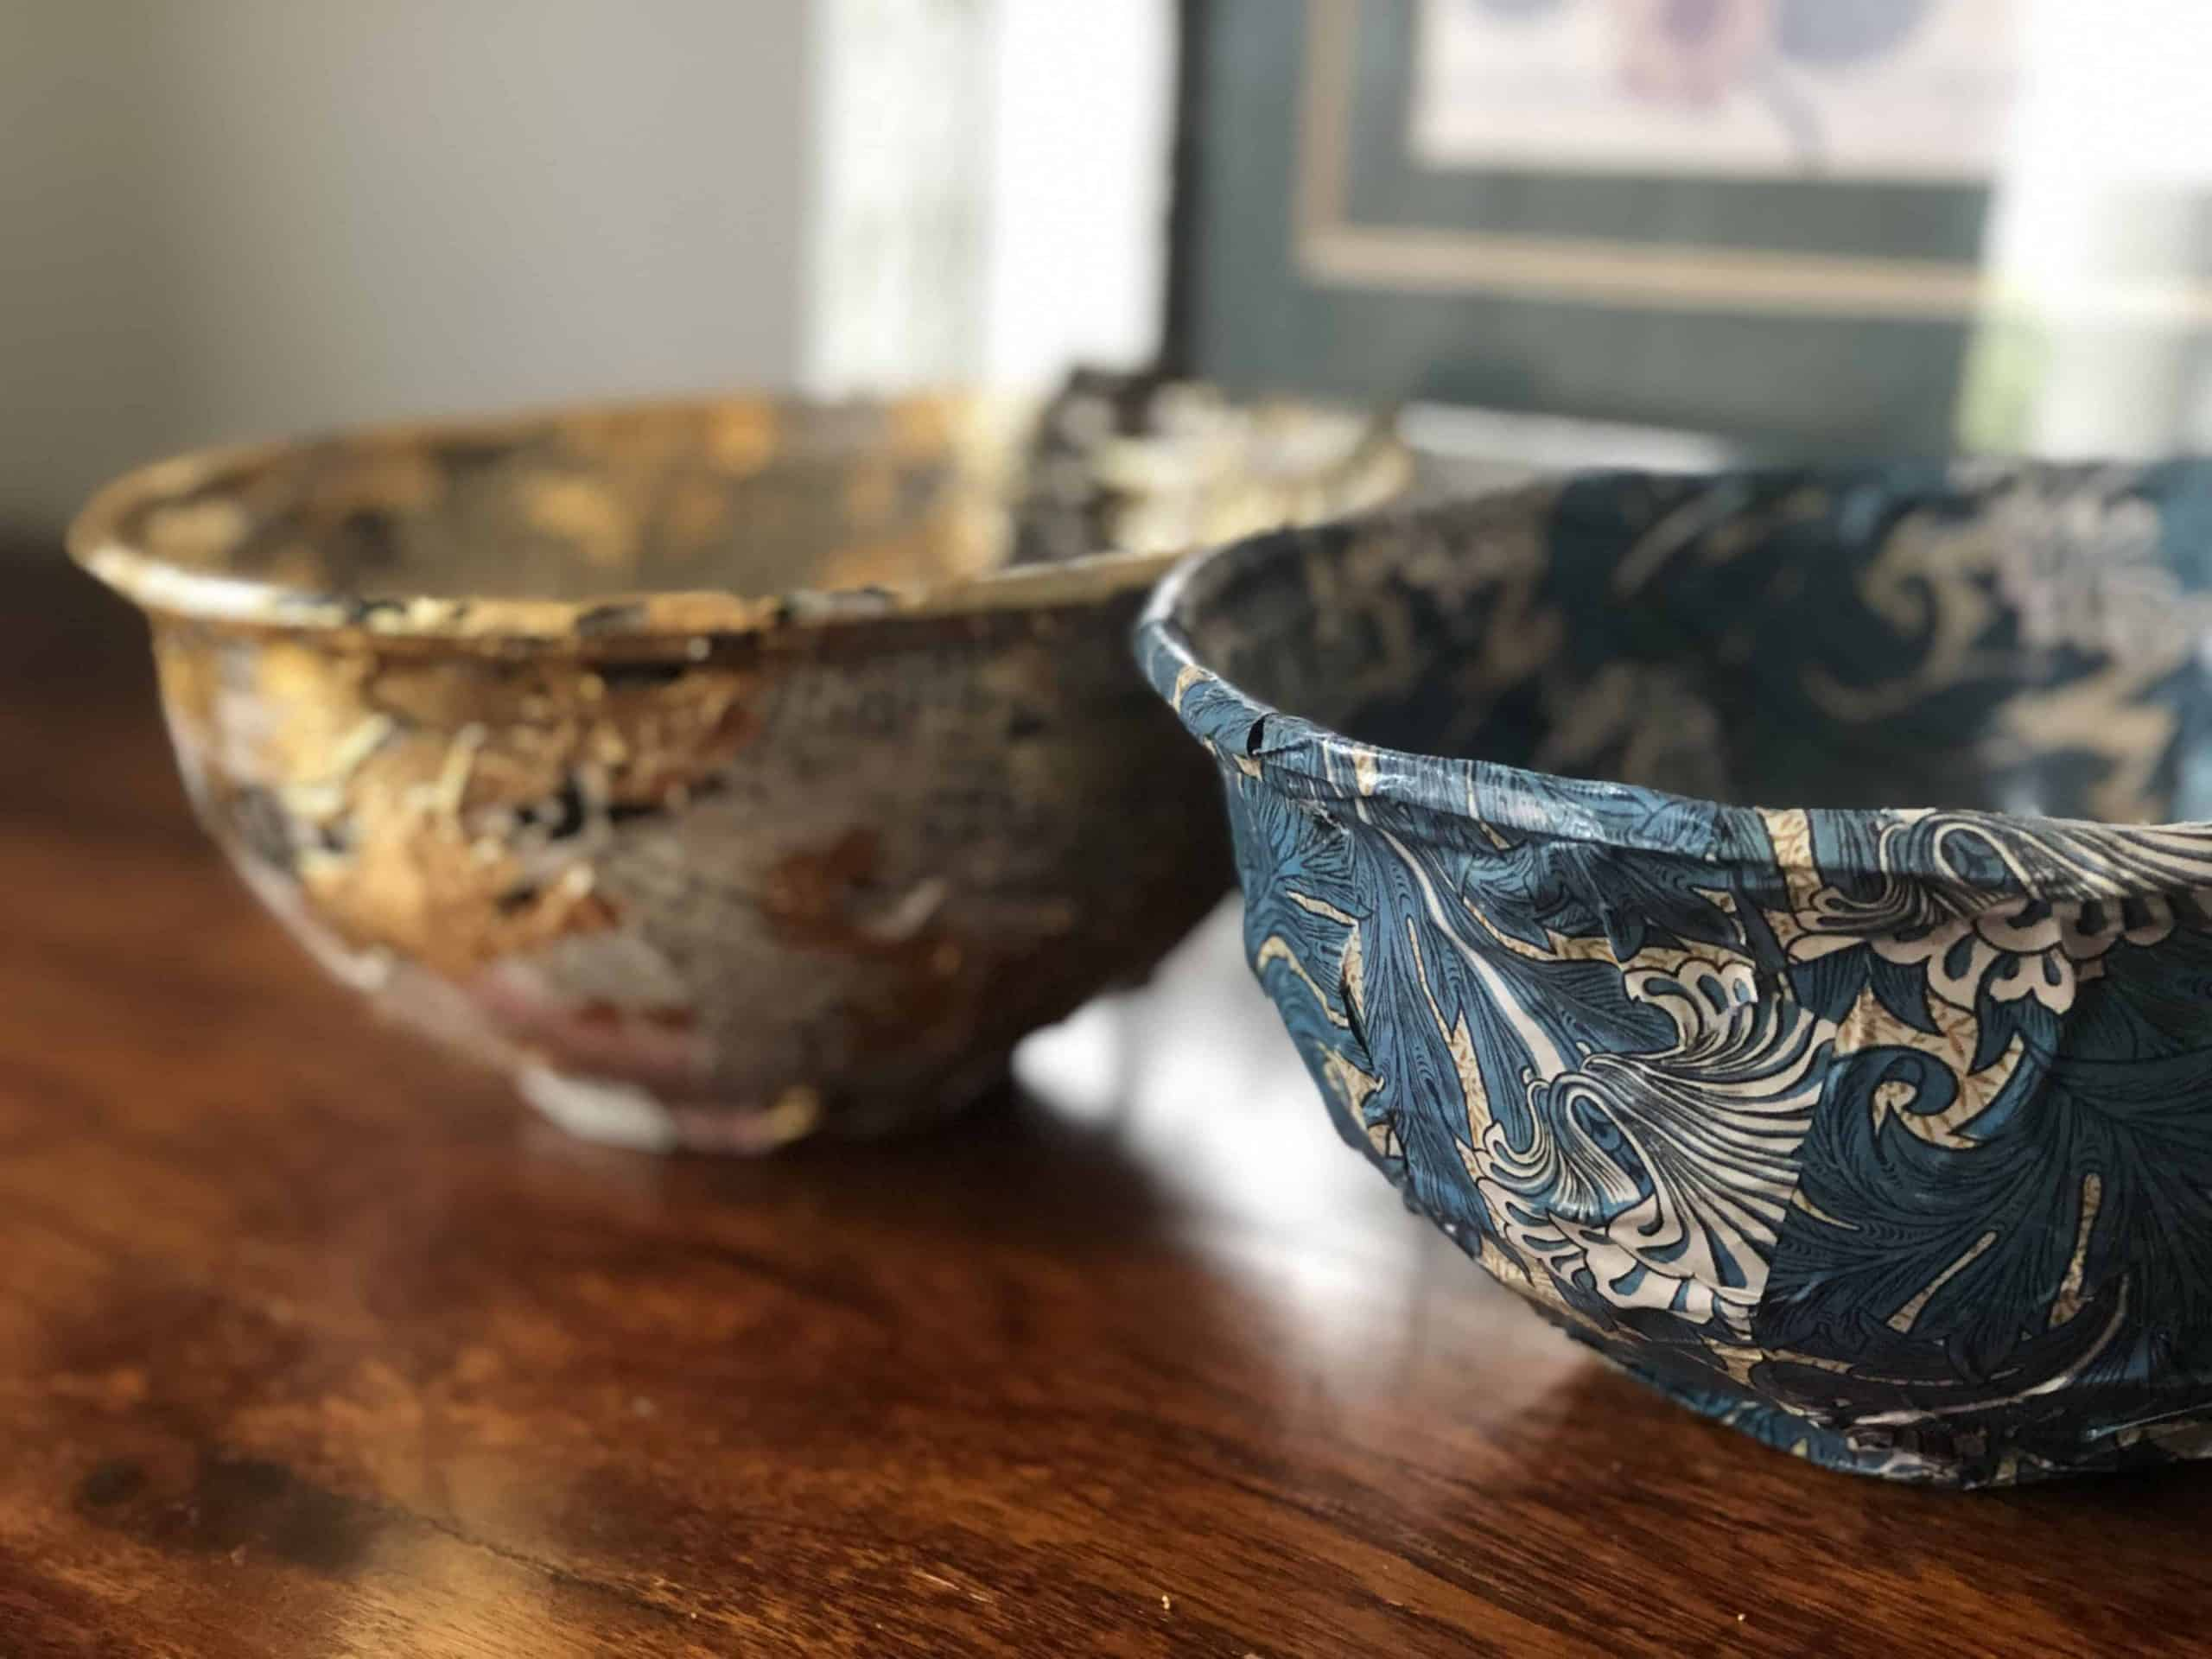 William Morris trinket bowls from takeaway containers upcycle project